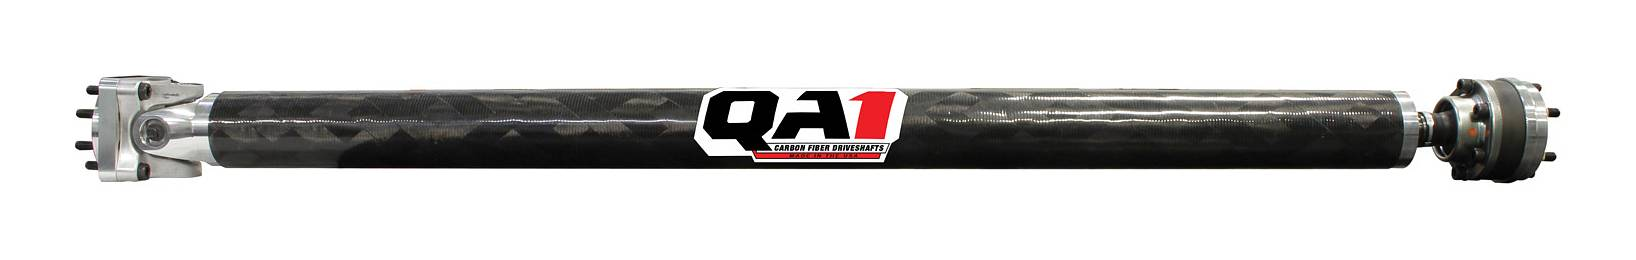 Challenger REV™ Series Carbon Fiber Driveshafts